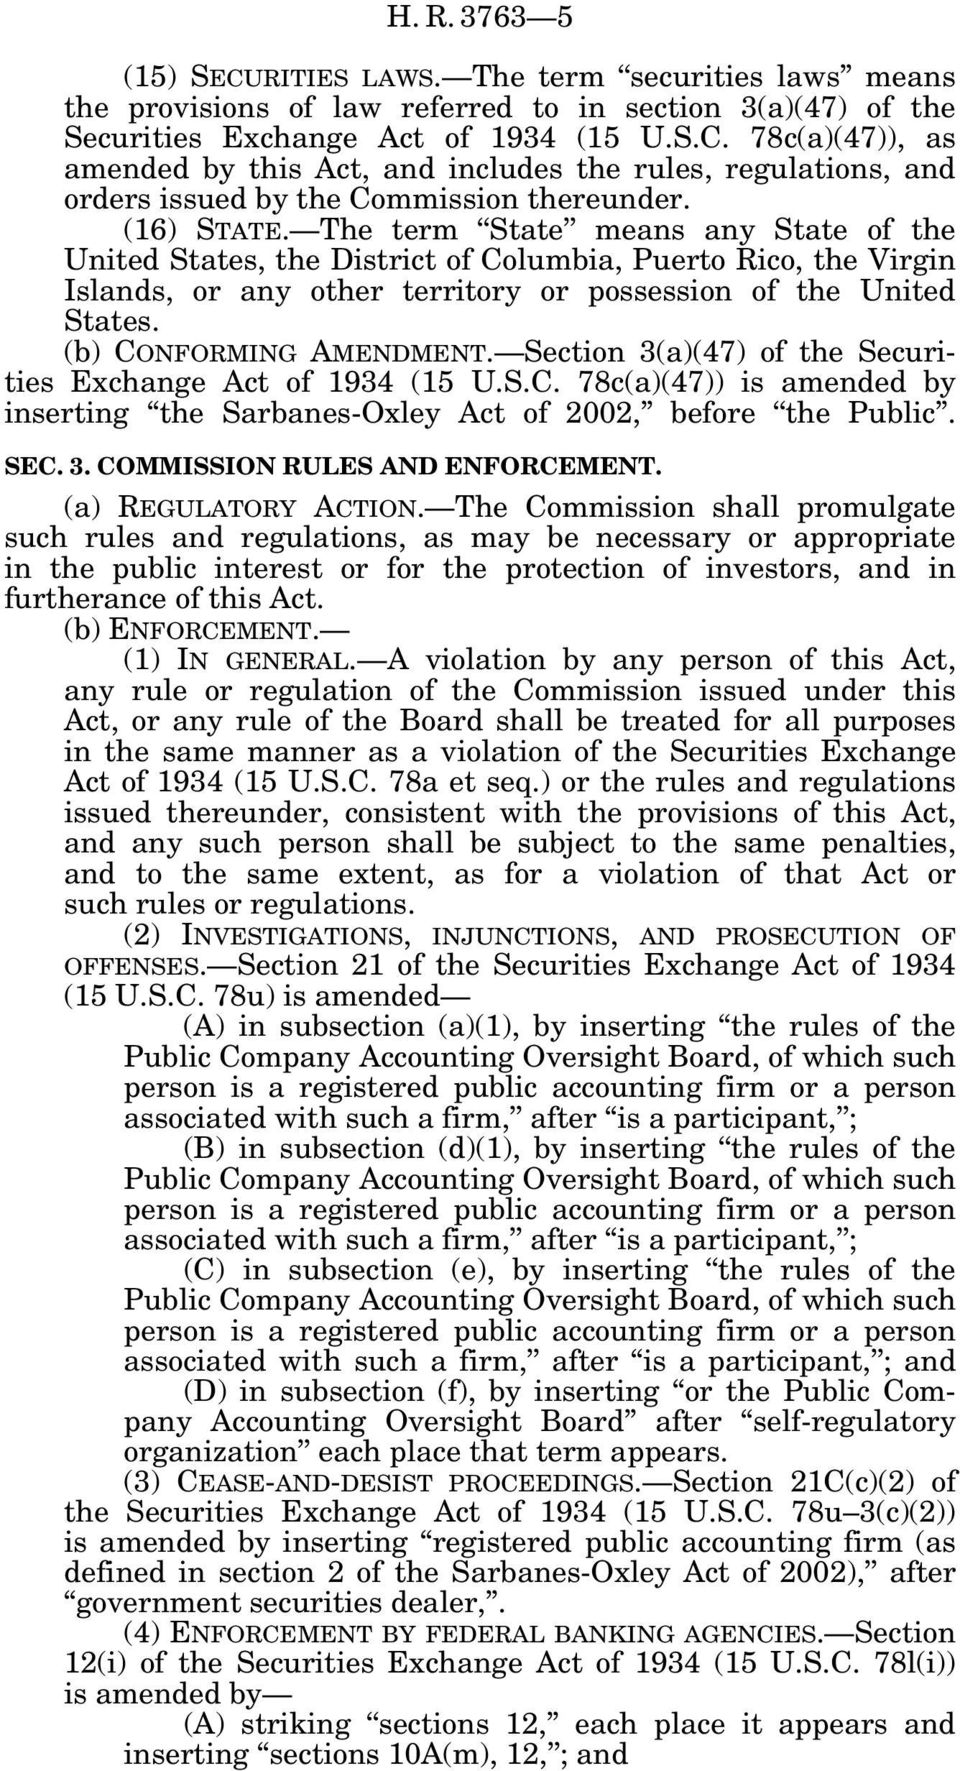 (b) CONFORMING AMENDMENT. Section 3(a)(47) of the Securities Exchange Act of 1934 (15 U.S.C. 78c(a)(47)) is amended by inserting the Sarbanes-Oxley Act of 2002, before the Public. SEC. 3. COMMISSION RULES AND ENFORCEMENT.